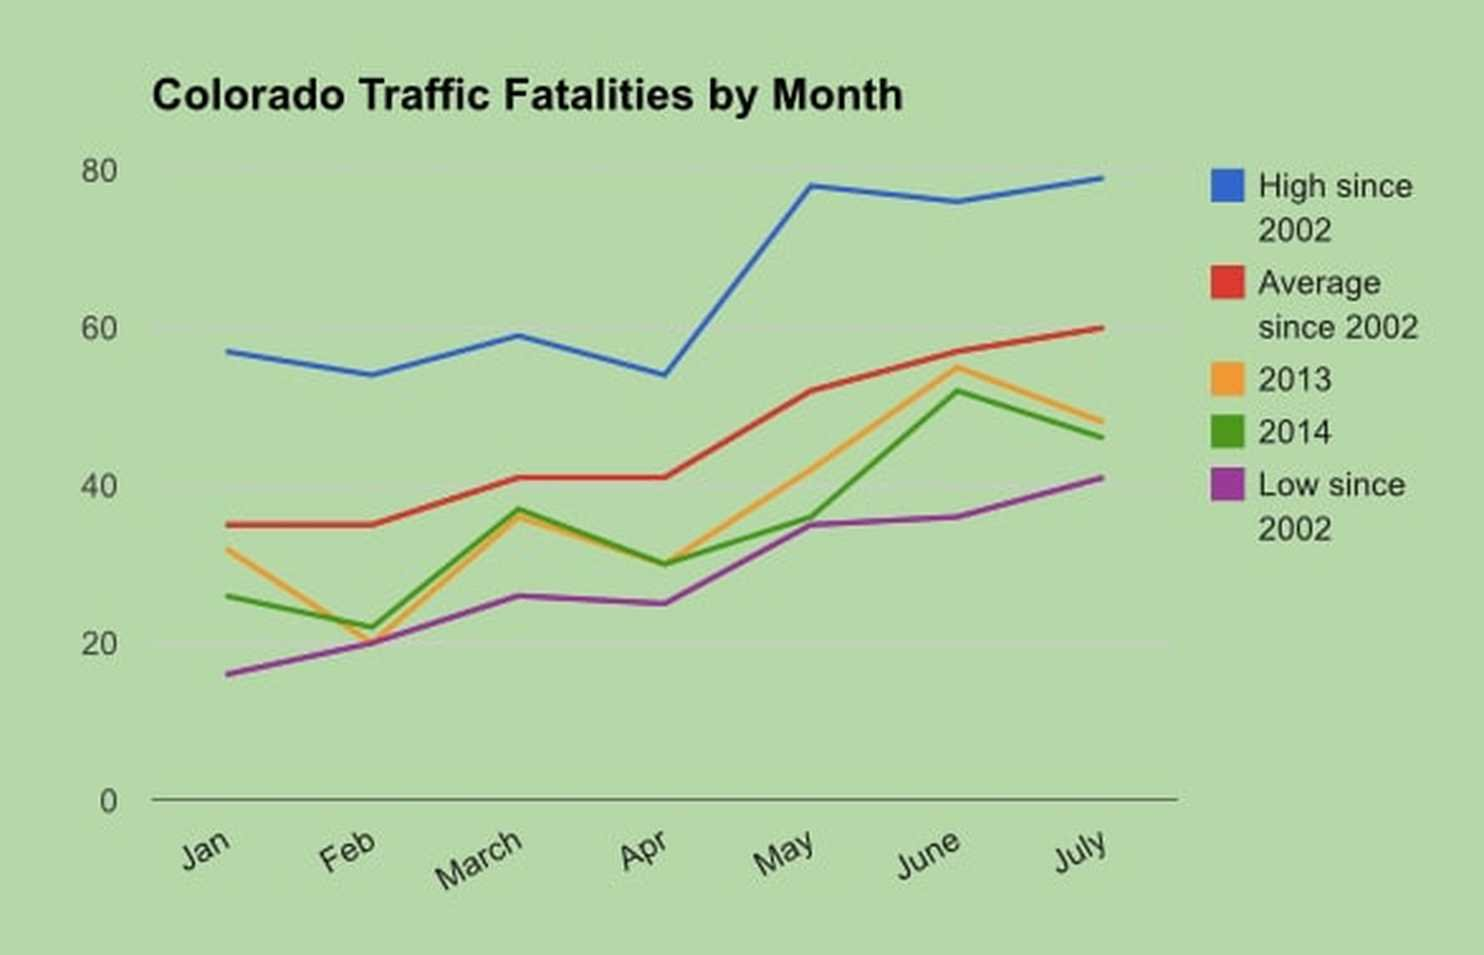 Opinion | Since marijuana legalization, highway fatalities in Colorado are at near-historic lows